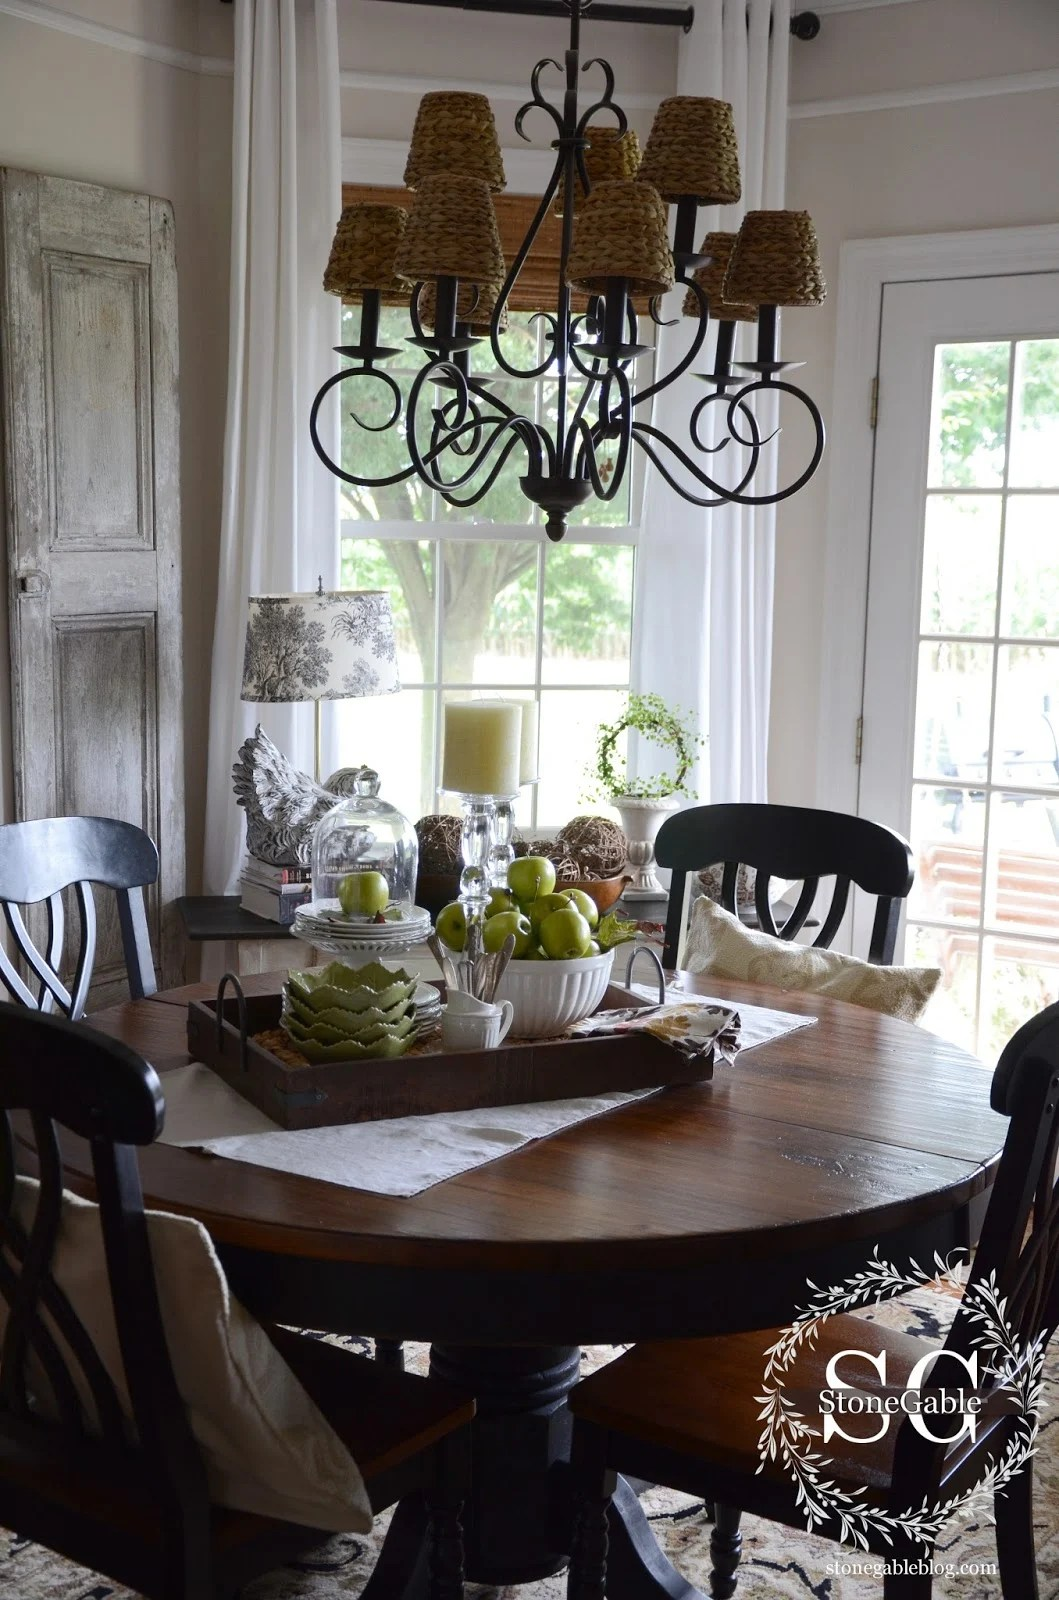 Dining Table Decor {for an Everyday Look}